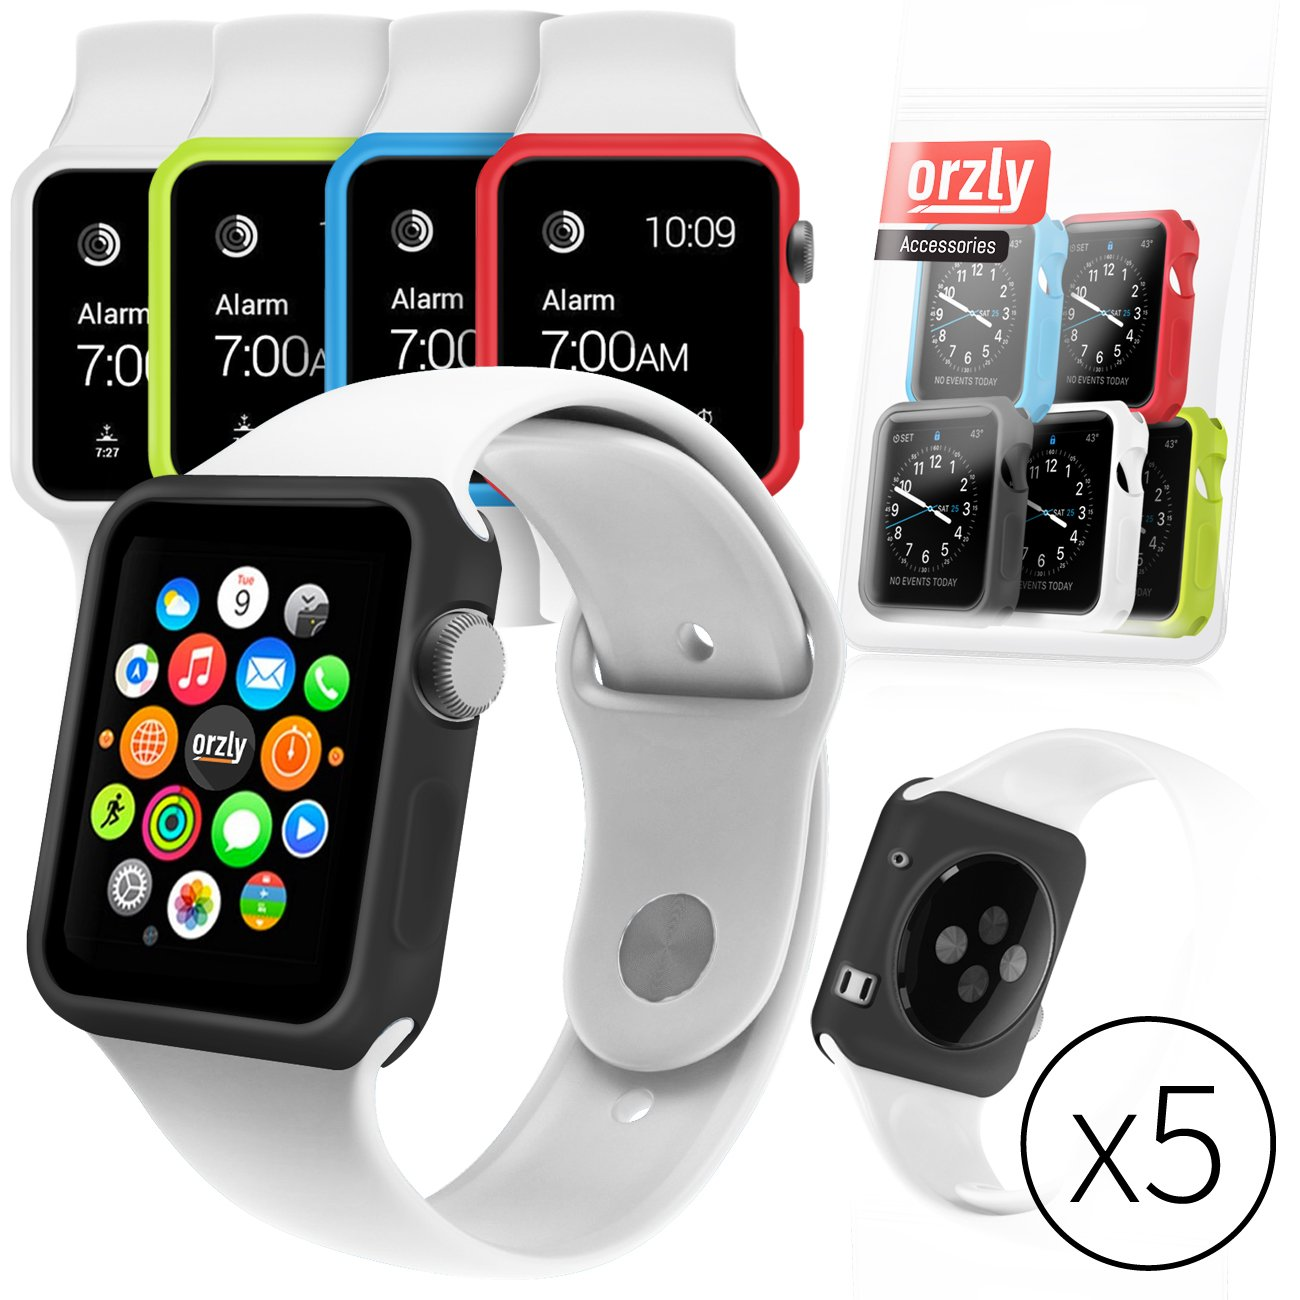 Top 20 Best Apple Watch Cases List And Reviews 2016 2017 On Spigen Rugged Armor Case 38mm Tpu Softcase Original Orzly 5 In 1 Funcolor Face Plates For 42 Mm Multi Pack Of Interchangeable Silicon Gel Covers Assorted